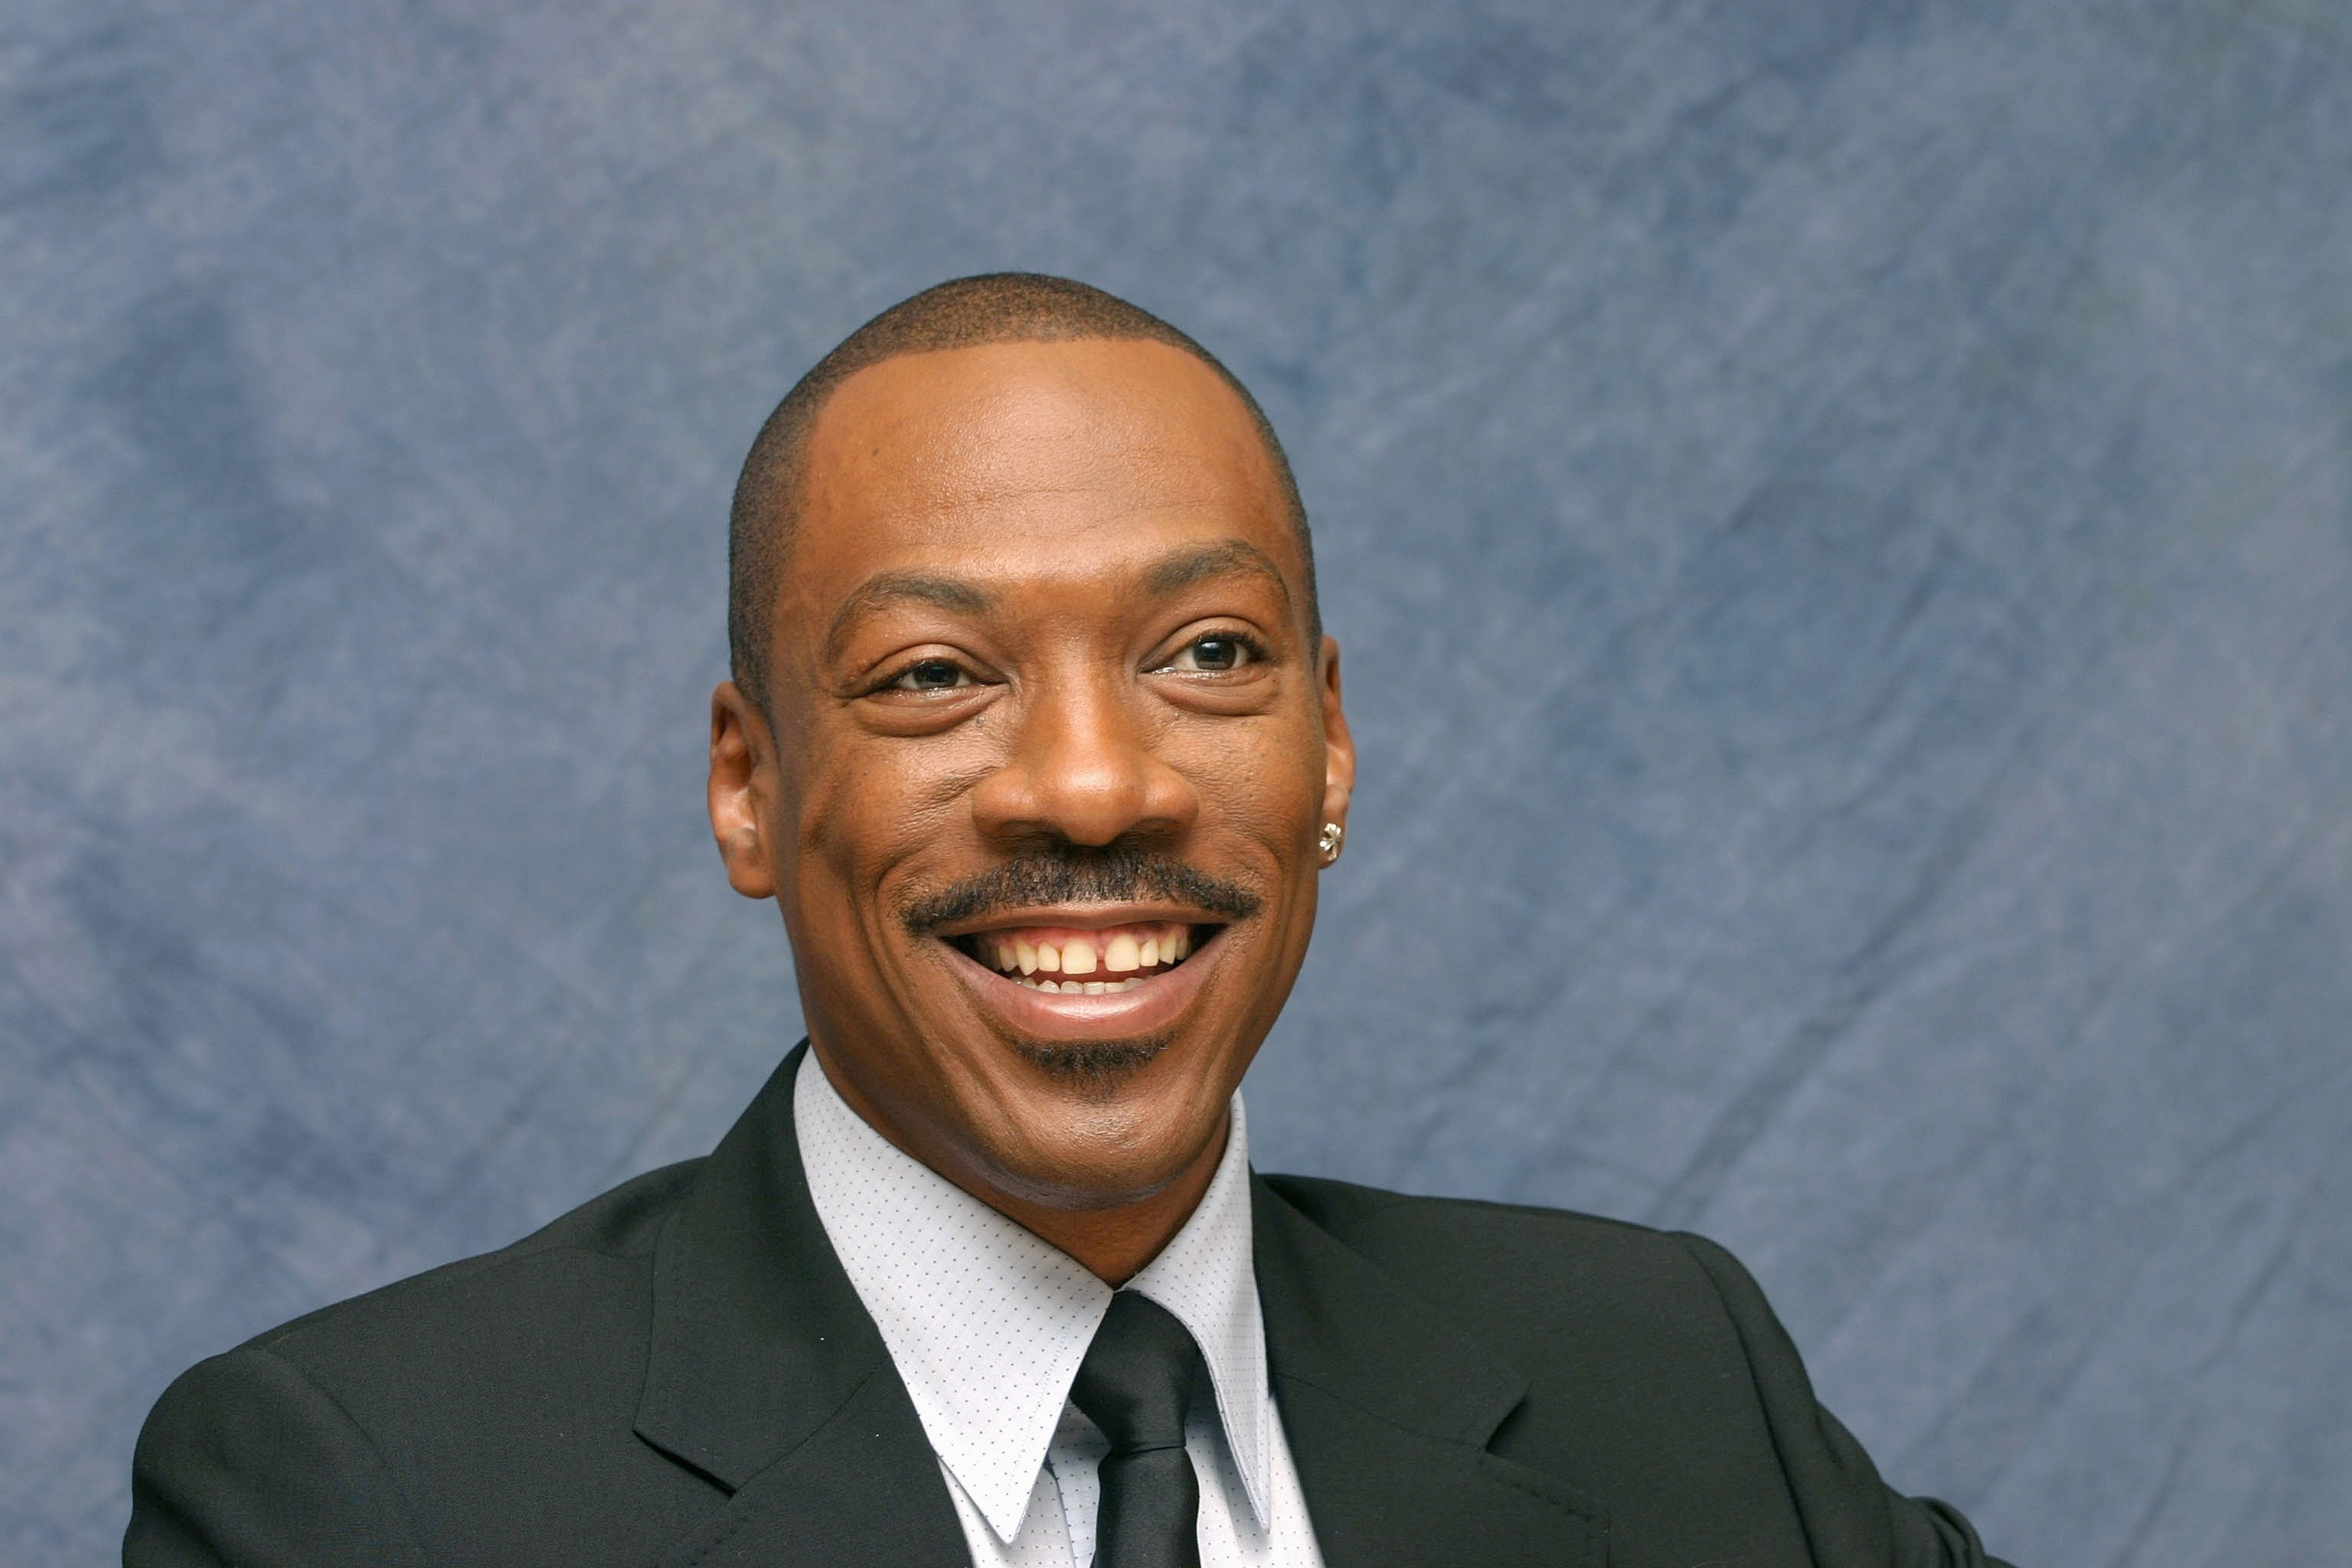 Eddie Murphy speaks with the media at the Beverly Hilton Hotel on November 17, 2006 in Beverly Hills, California | Photo: Getty Images